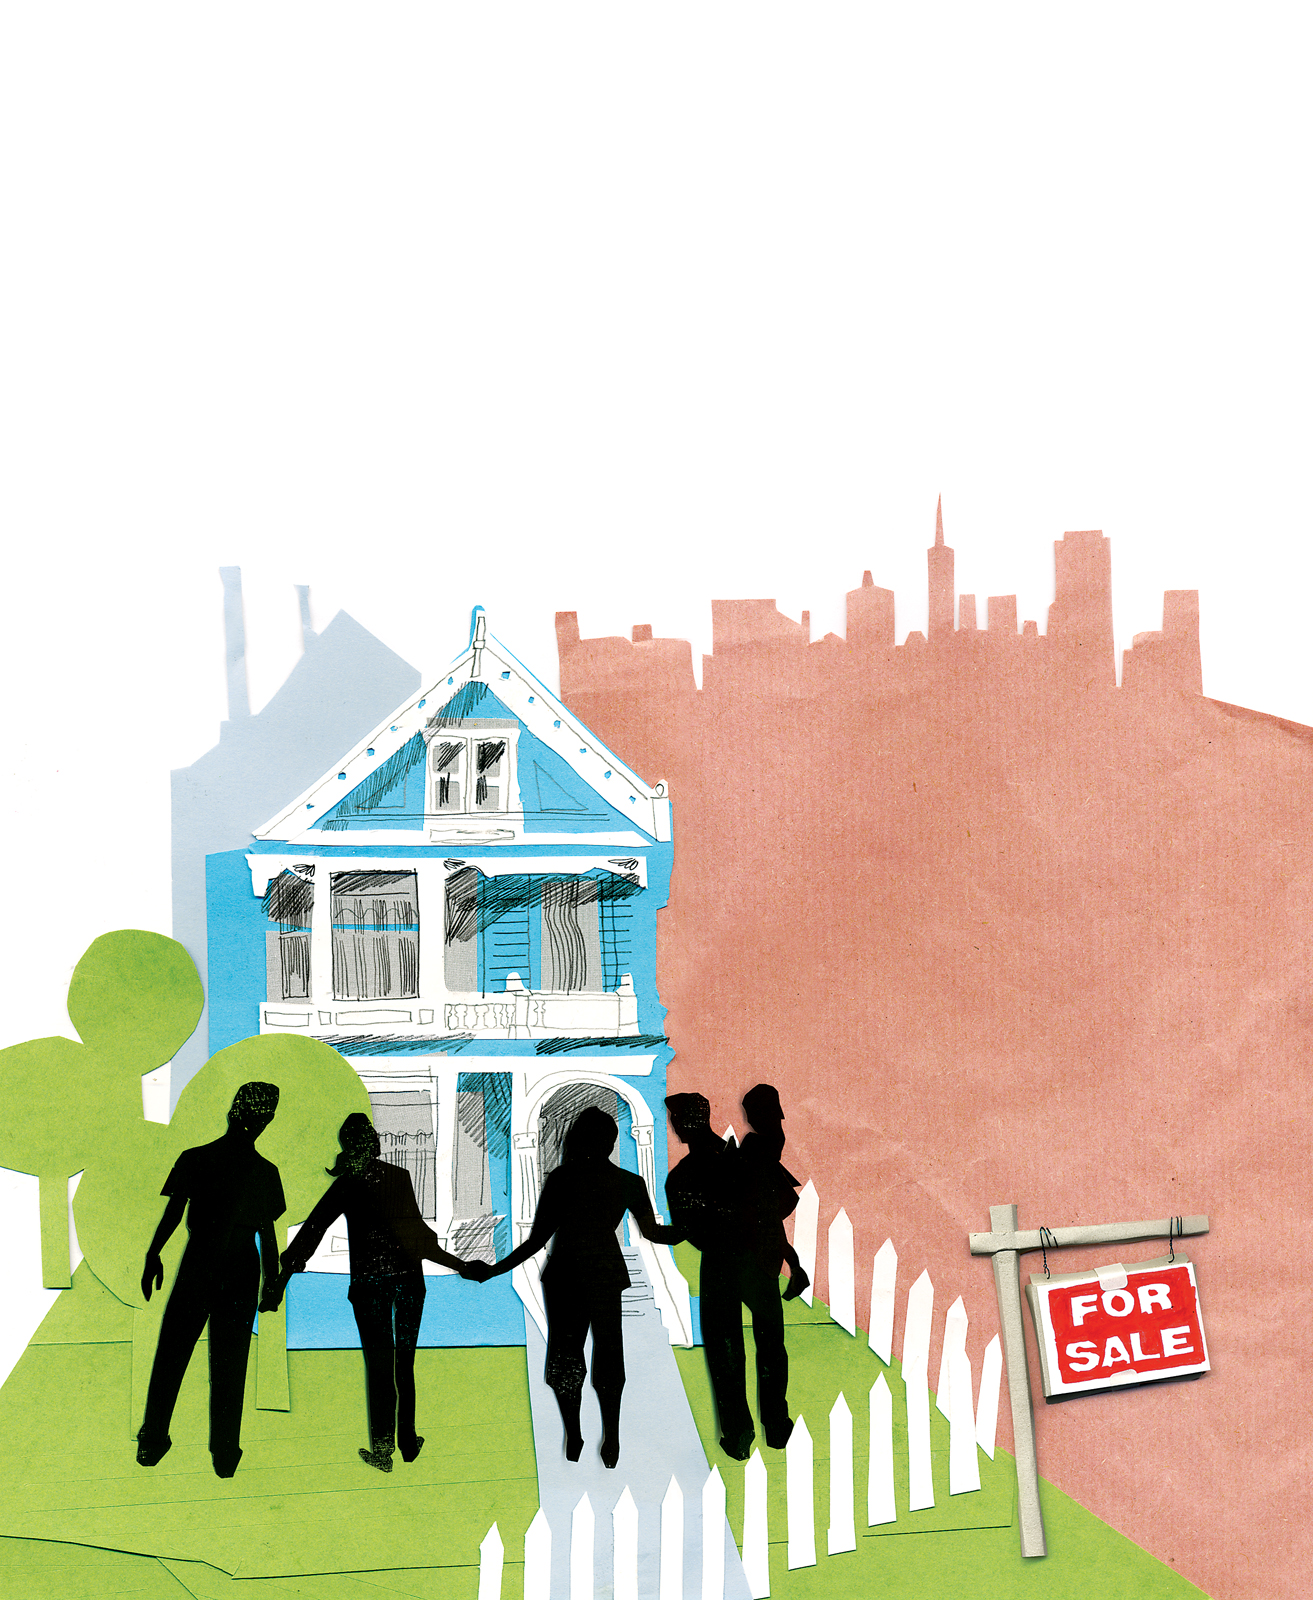 Tenancy-in-common (TIC)—when two or more people work together to own a percentage of the same property—is becoming increasingly popular among first-time buyers.